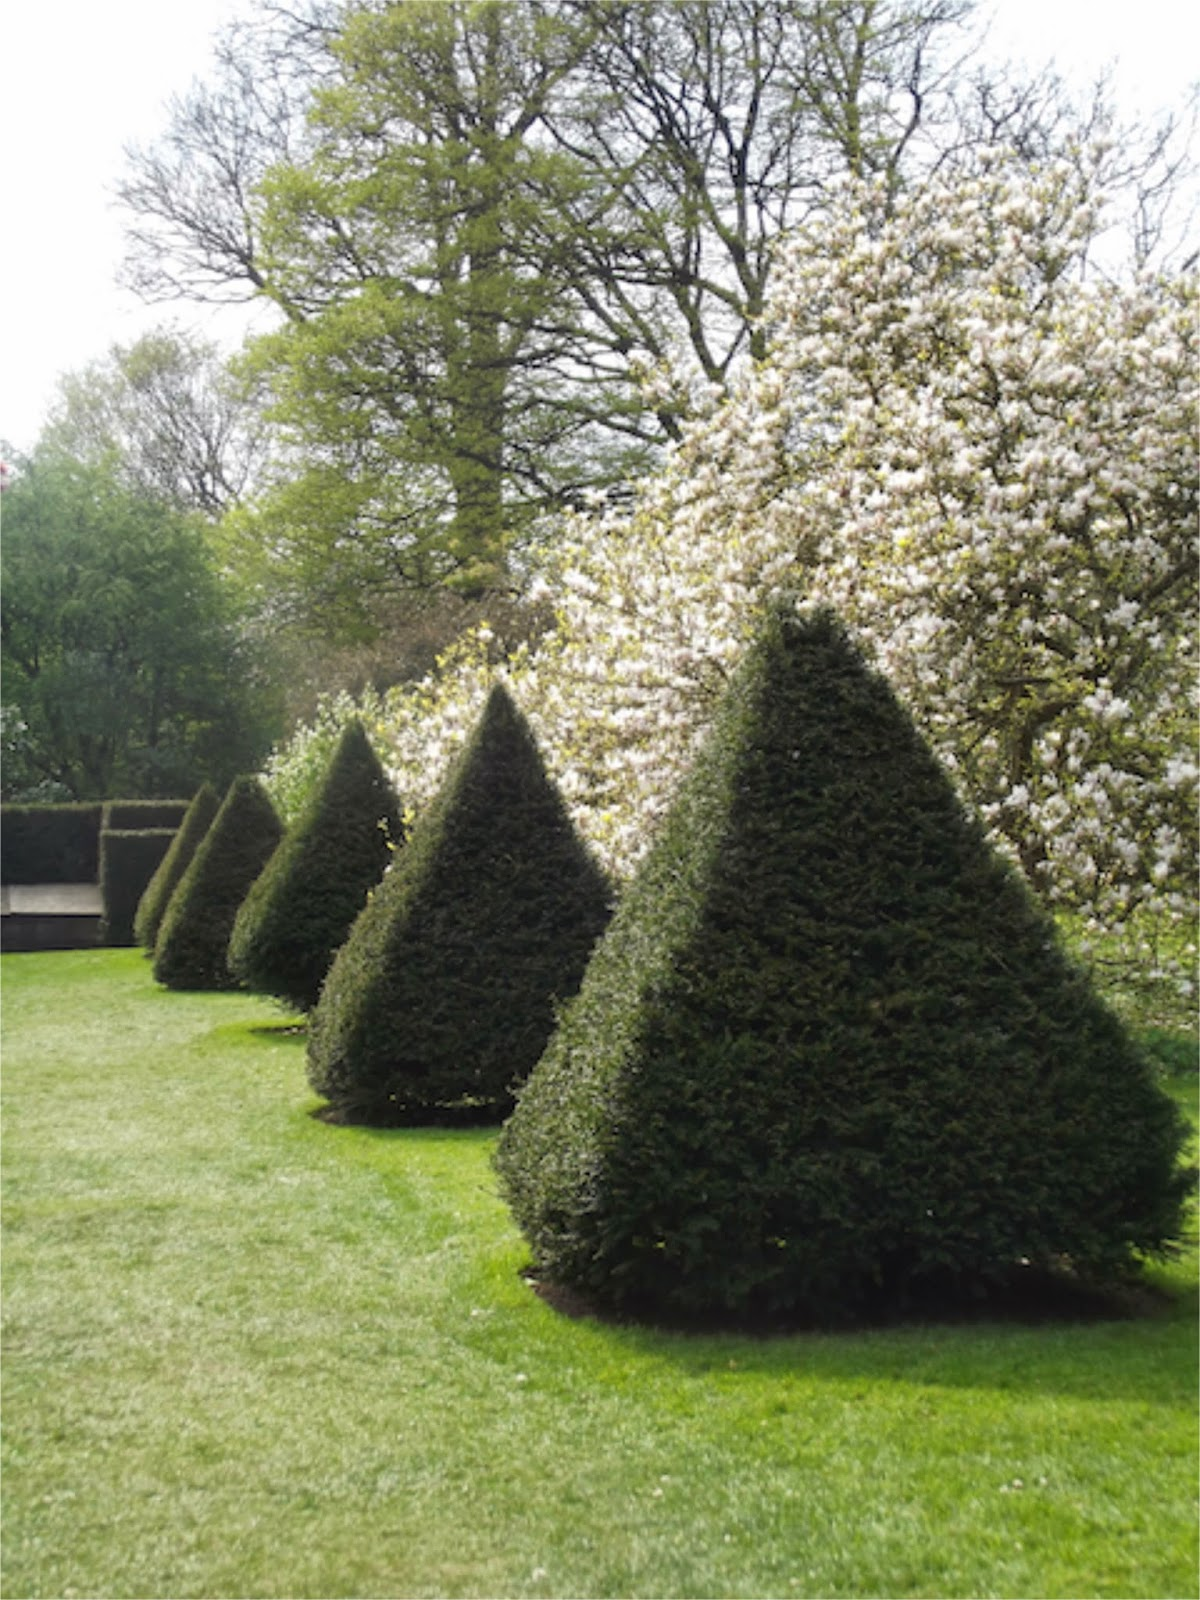 pyramids in Dutch garden at Sizergh Castle